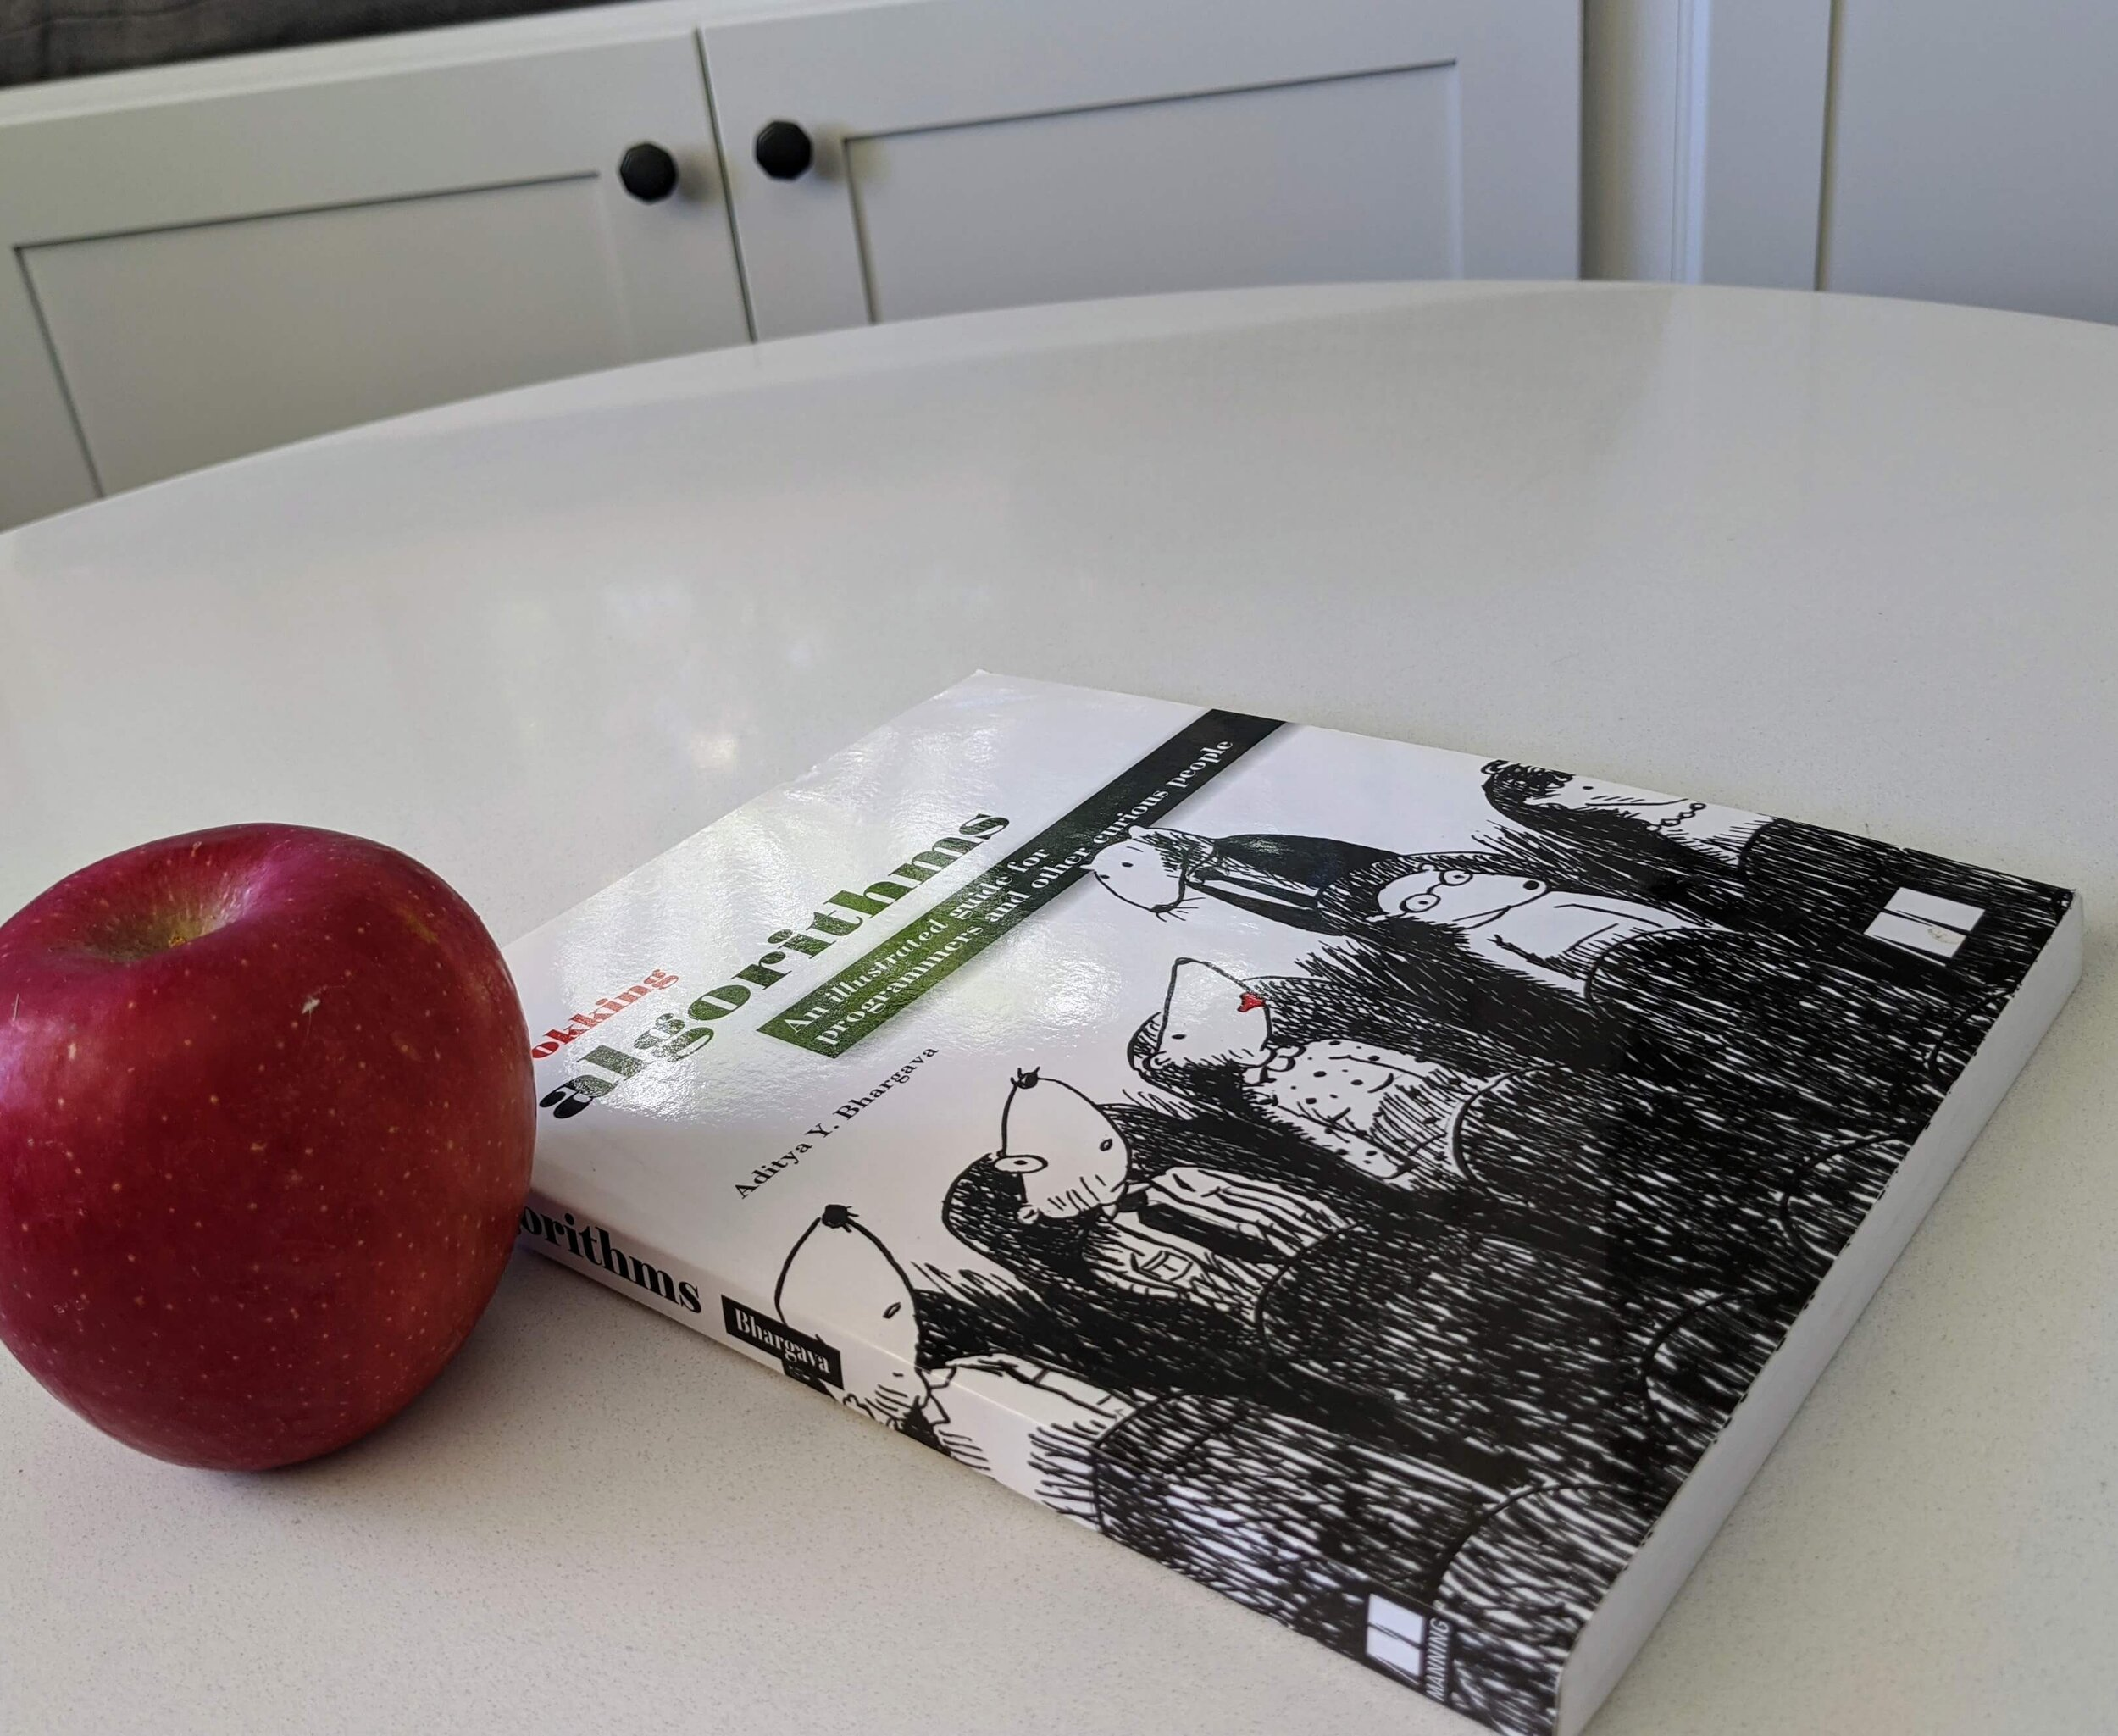 grokking-algorithms-on-table-with-apple